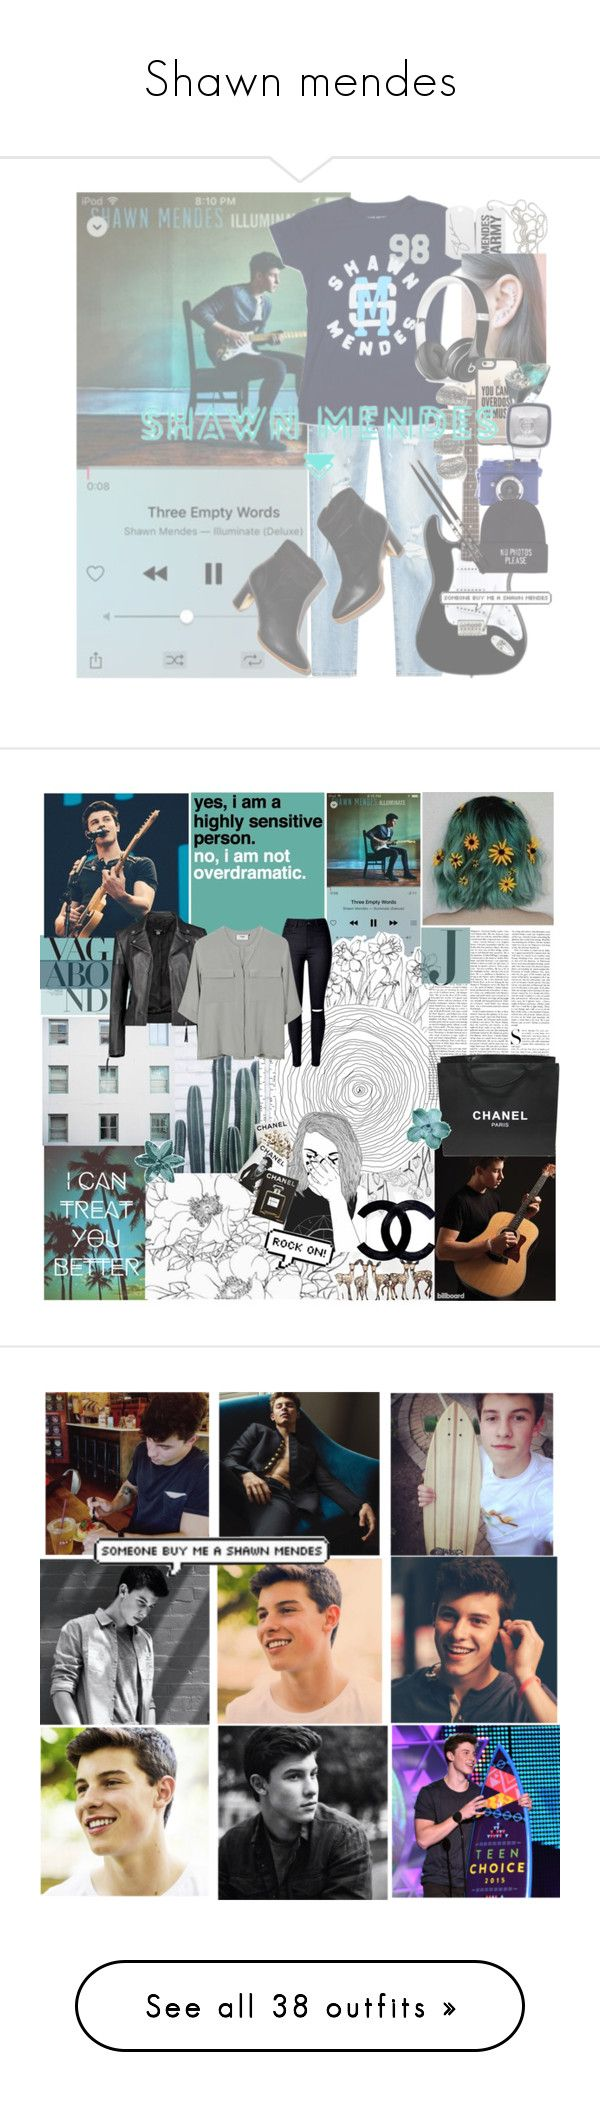 """""""Shawn mendes"""" by switchkid ❤ liked on Polyvore featuring True Religion, Beats by Dr. Dre, Casetify, Pasionae, JFR, Firth, mendesarmy, WALL, Vagabond and Vanity Fair"""